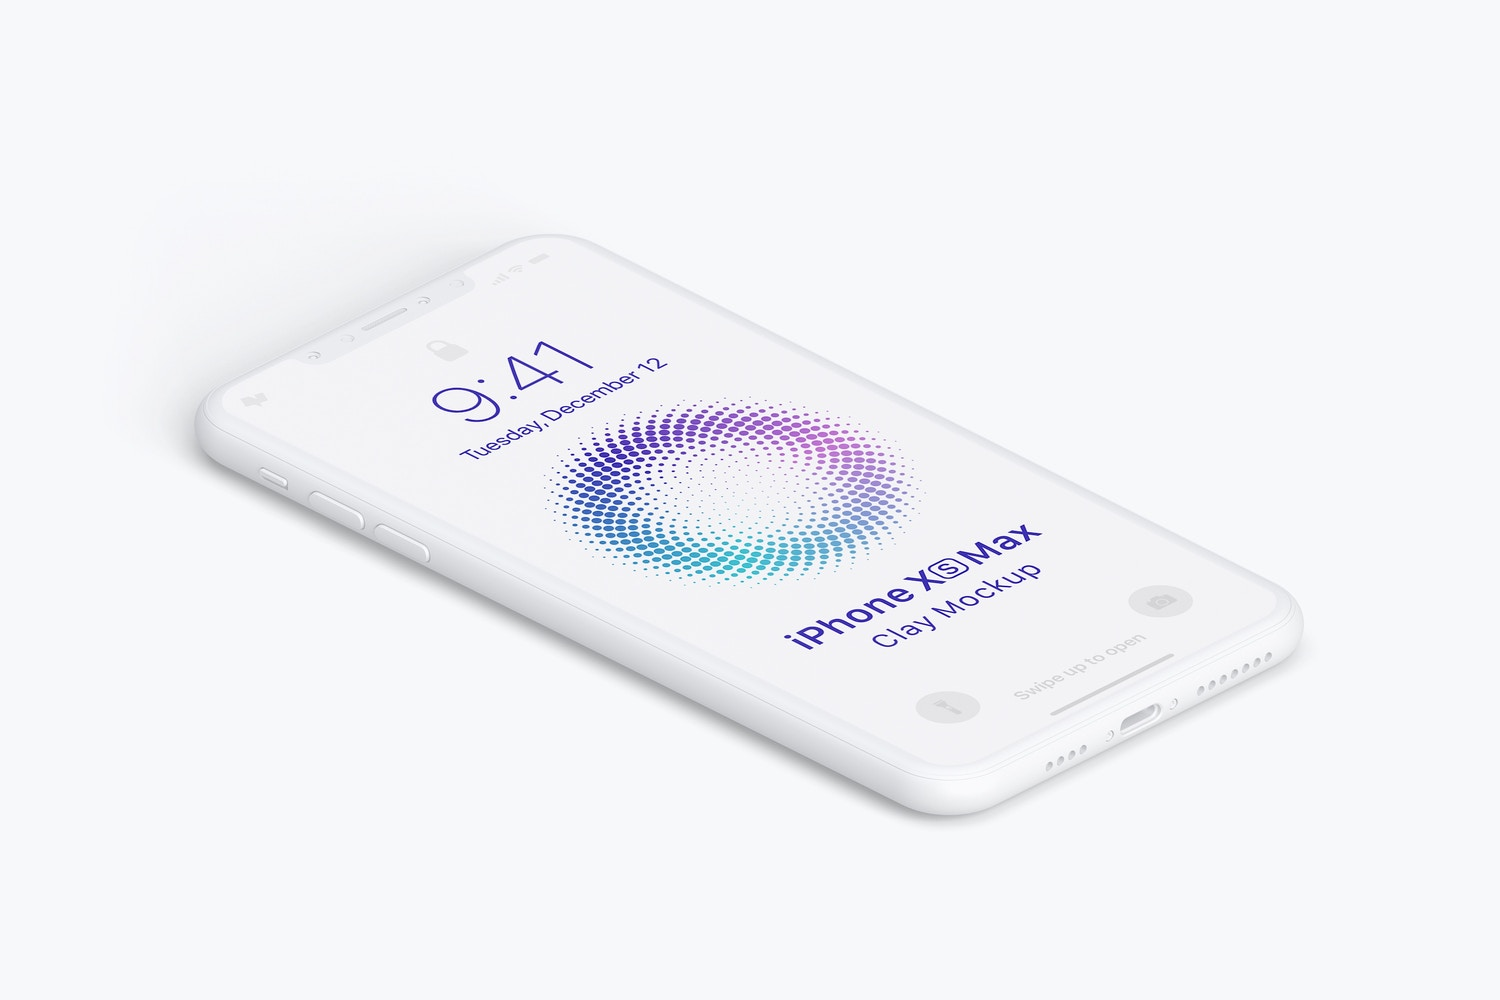 Isometric Clay iPhone Xs Max Mockup, Left View by Original Mockups on Original Mockups